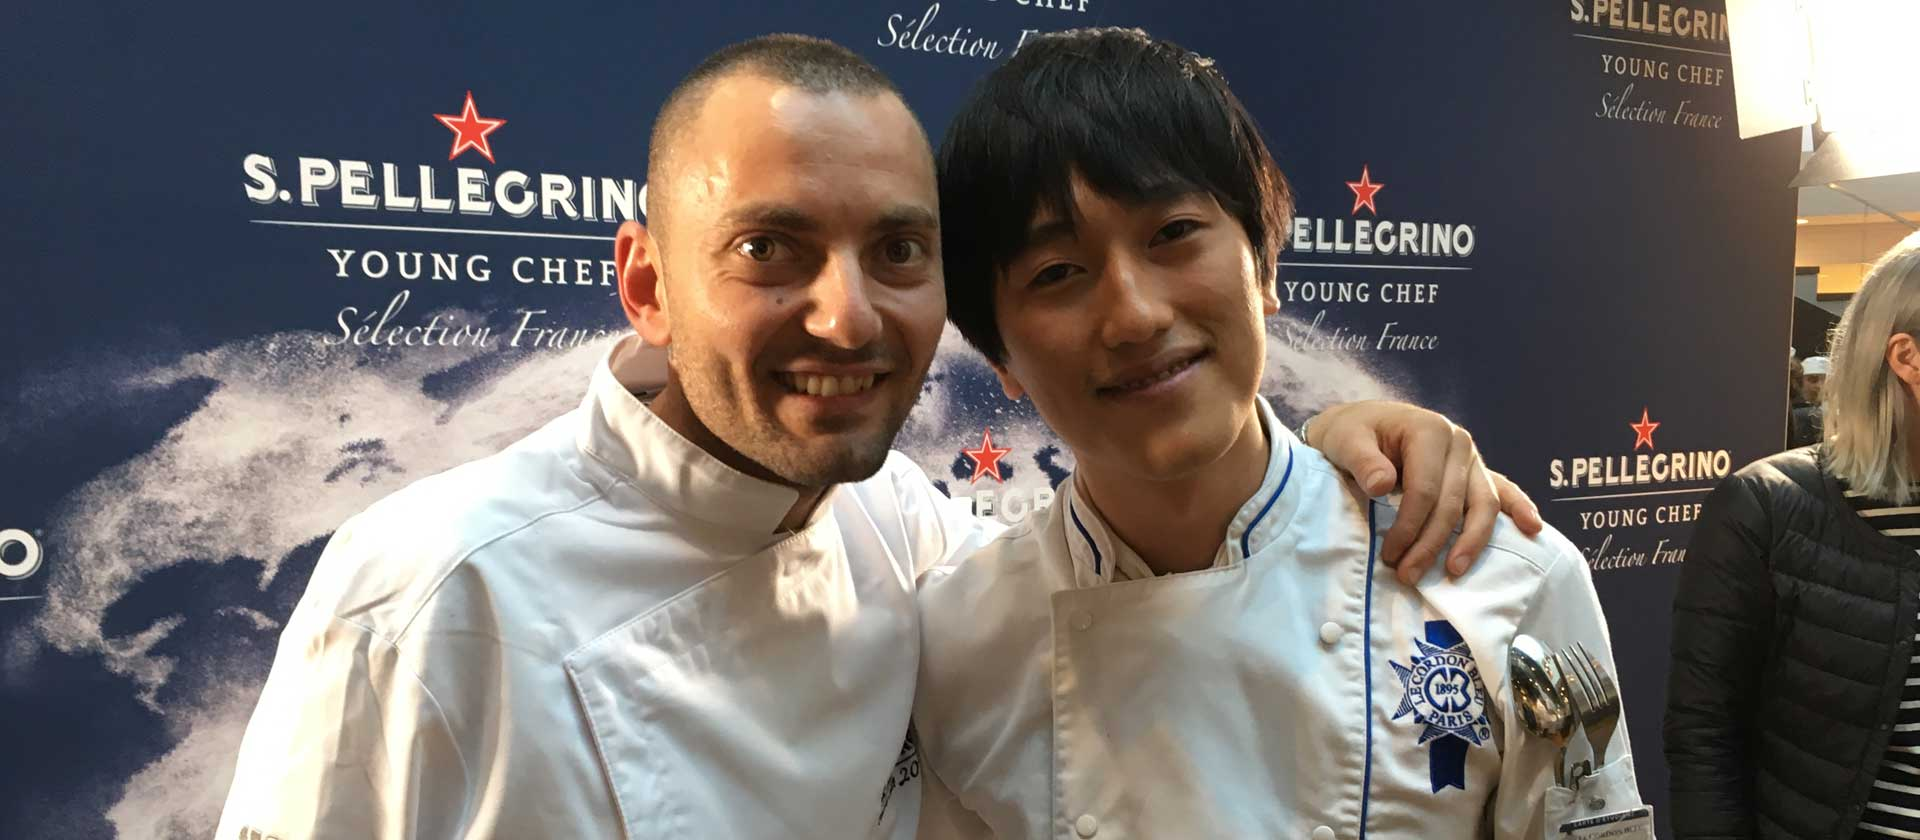 Antonio Buono et son commis Le Cordon Bleu Paris, Juho